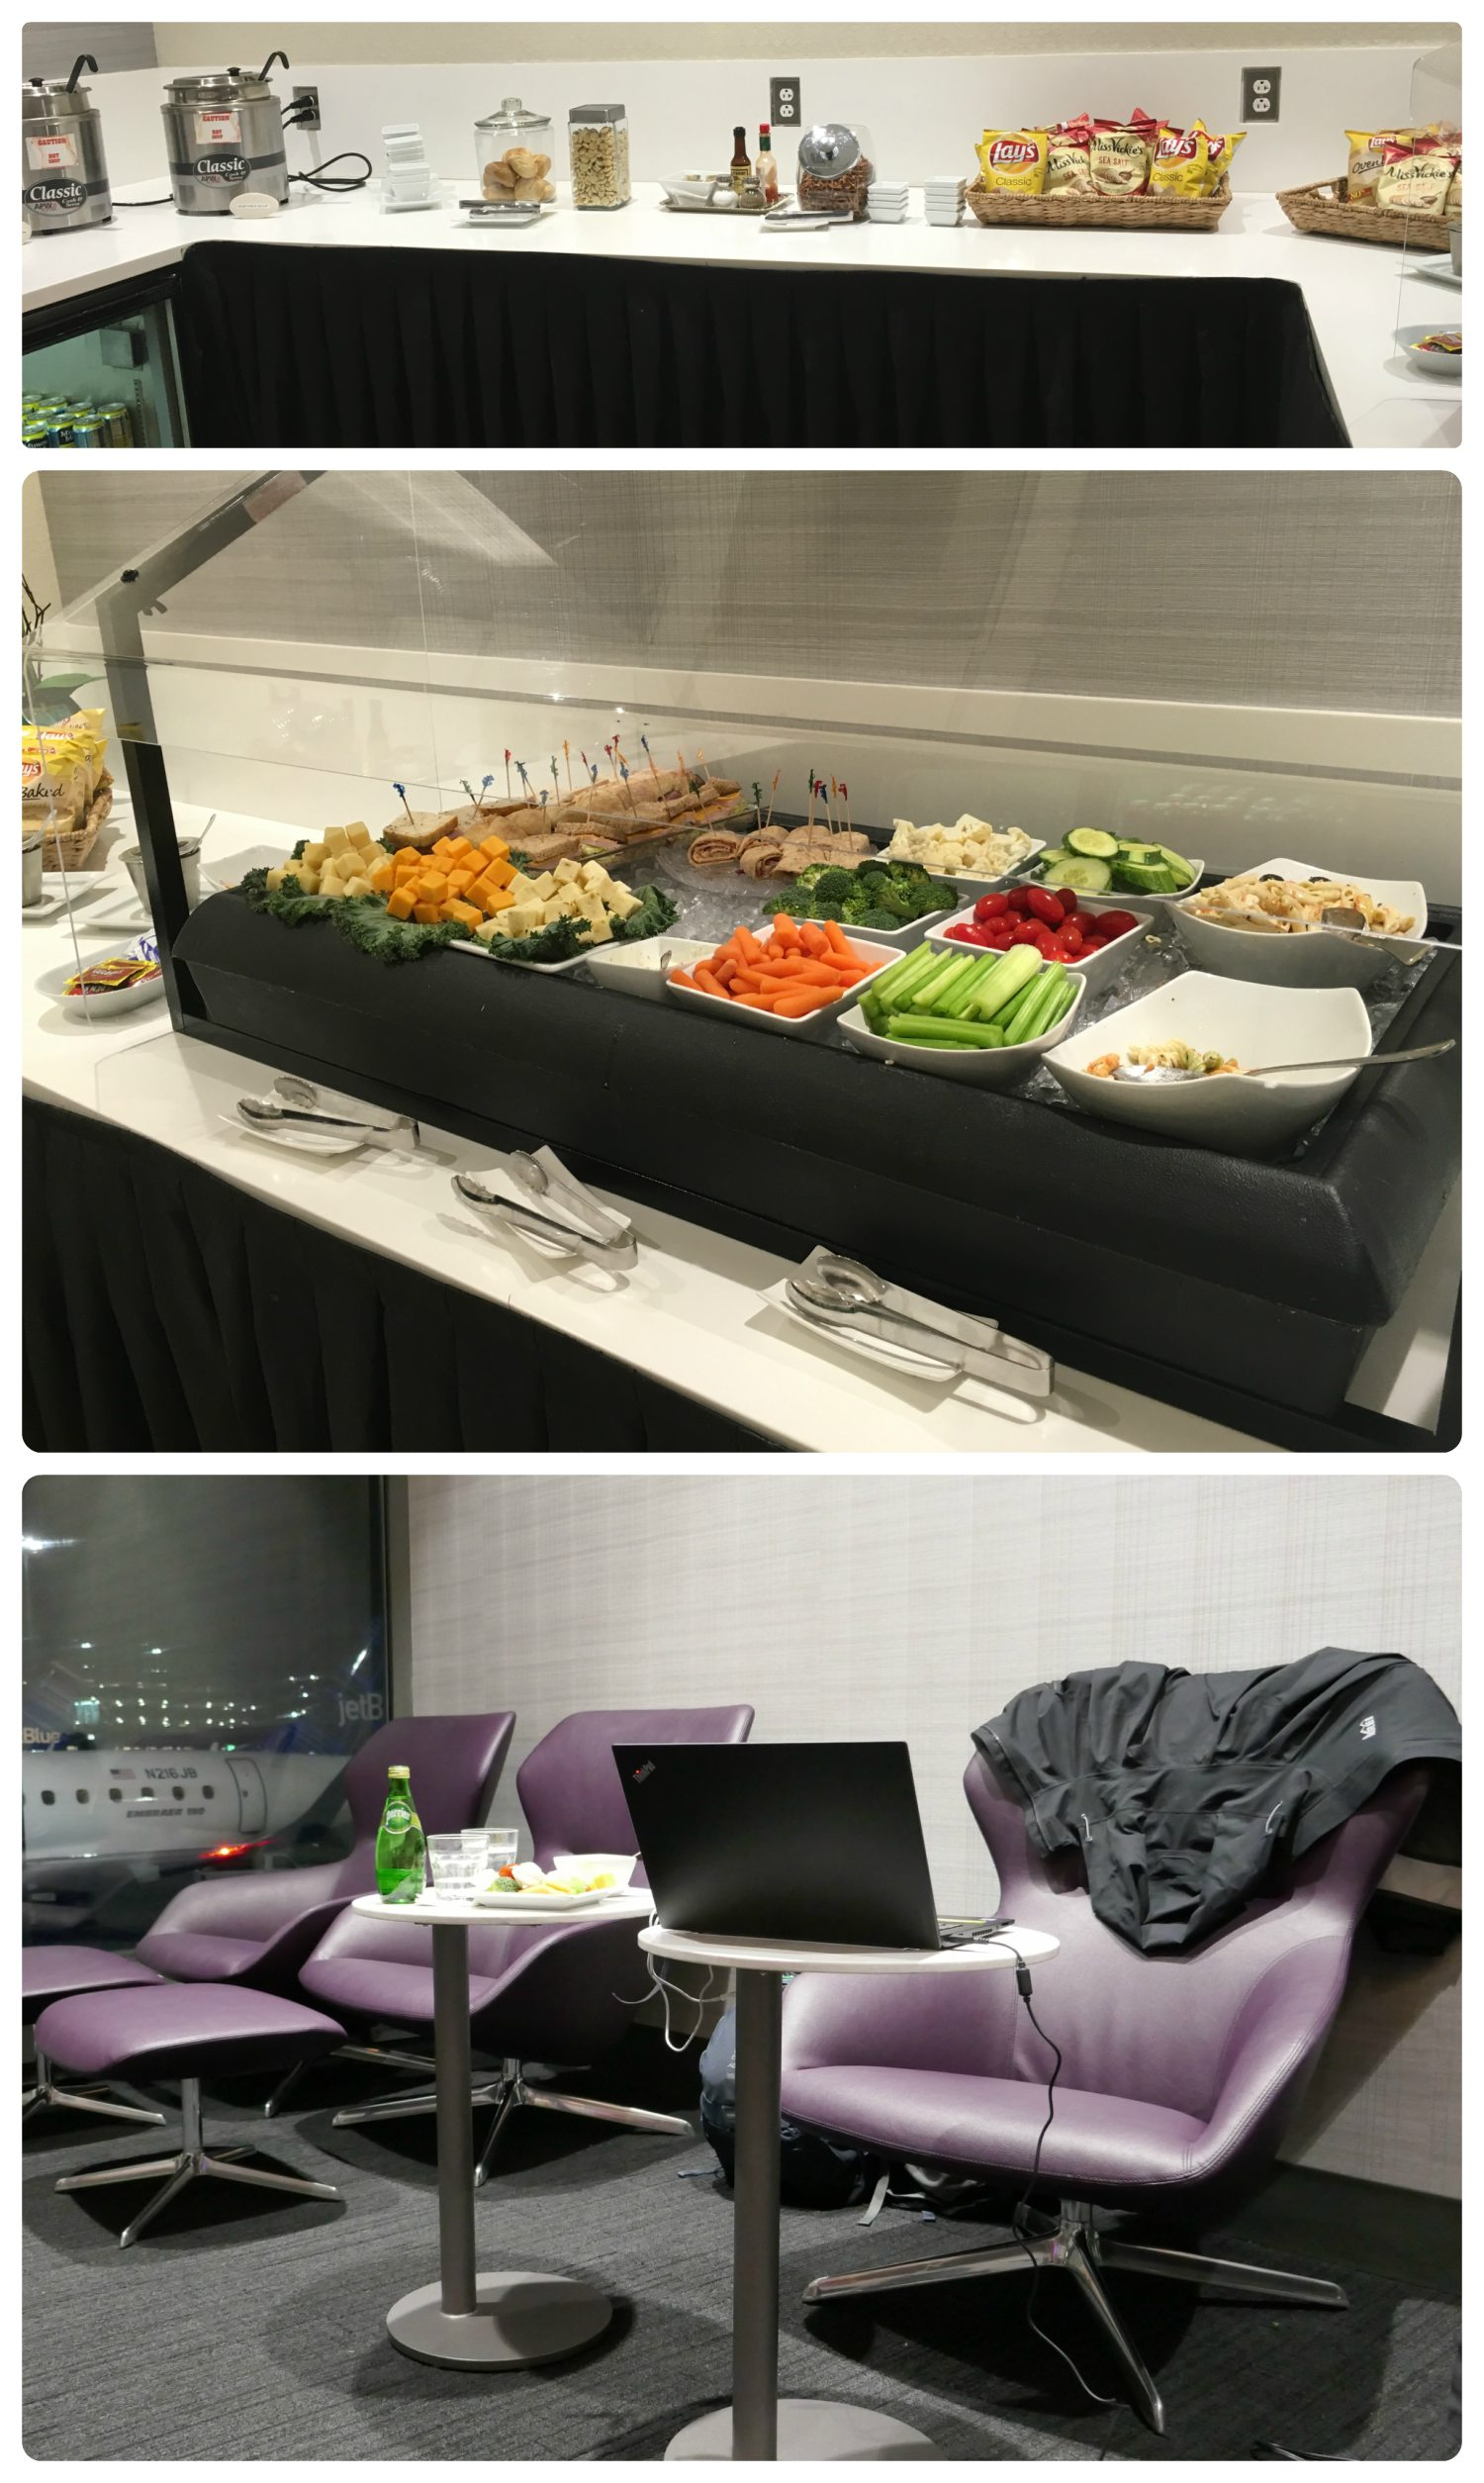 The Boston airport lounge was great! Fresh food (tons of veggies to keep us full!) and a great area for us to do our work in.